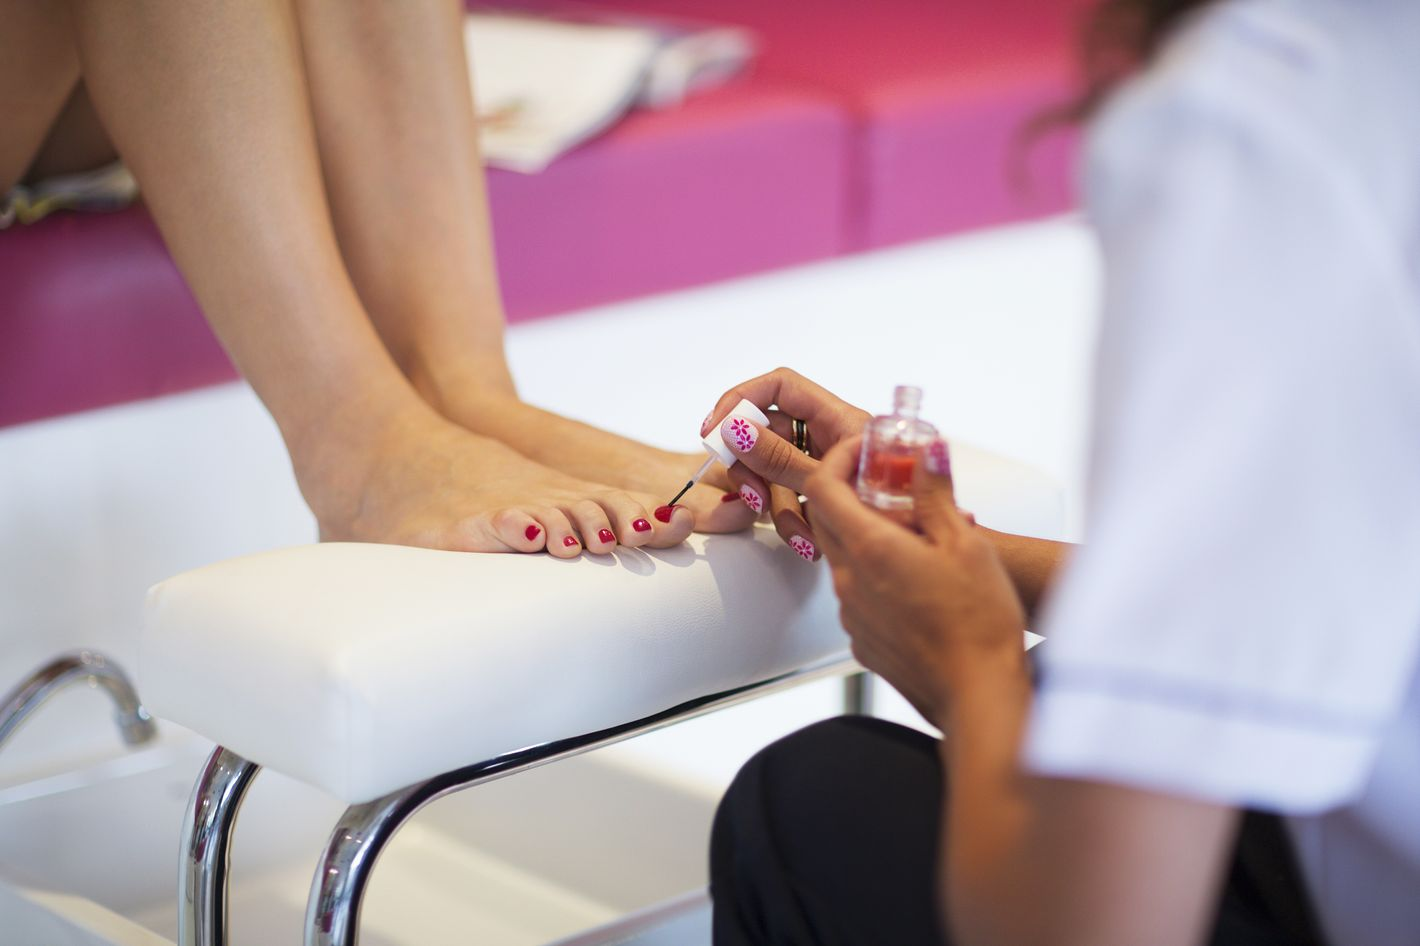 What Getting Your Nails Done Really Means